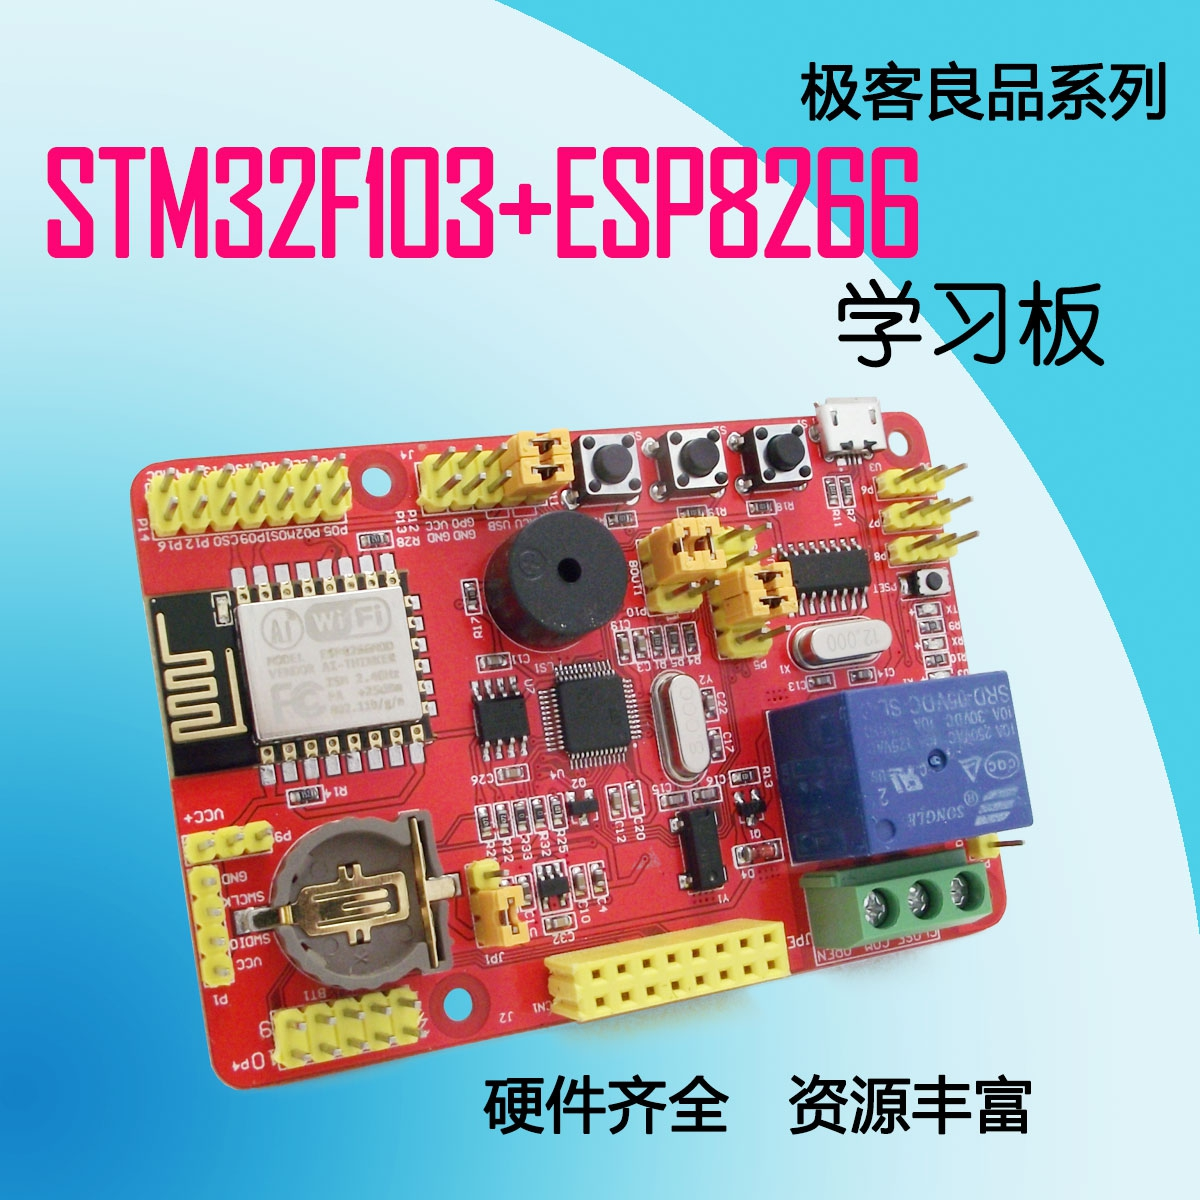 STM32F103C8+ESP8266 Learning Board Evaluation Board Introduction Artifact STM32 stm32f103c8t6 core board learning board assessment board entry artifact stm32